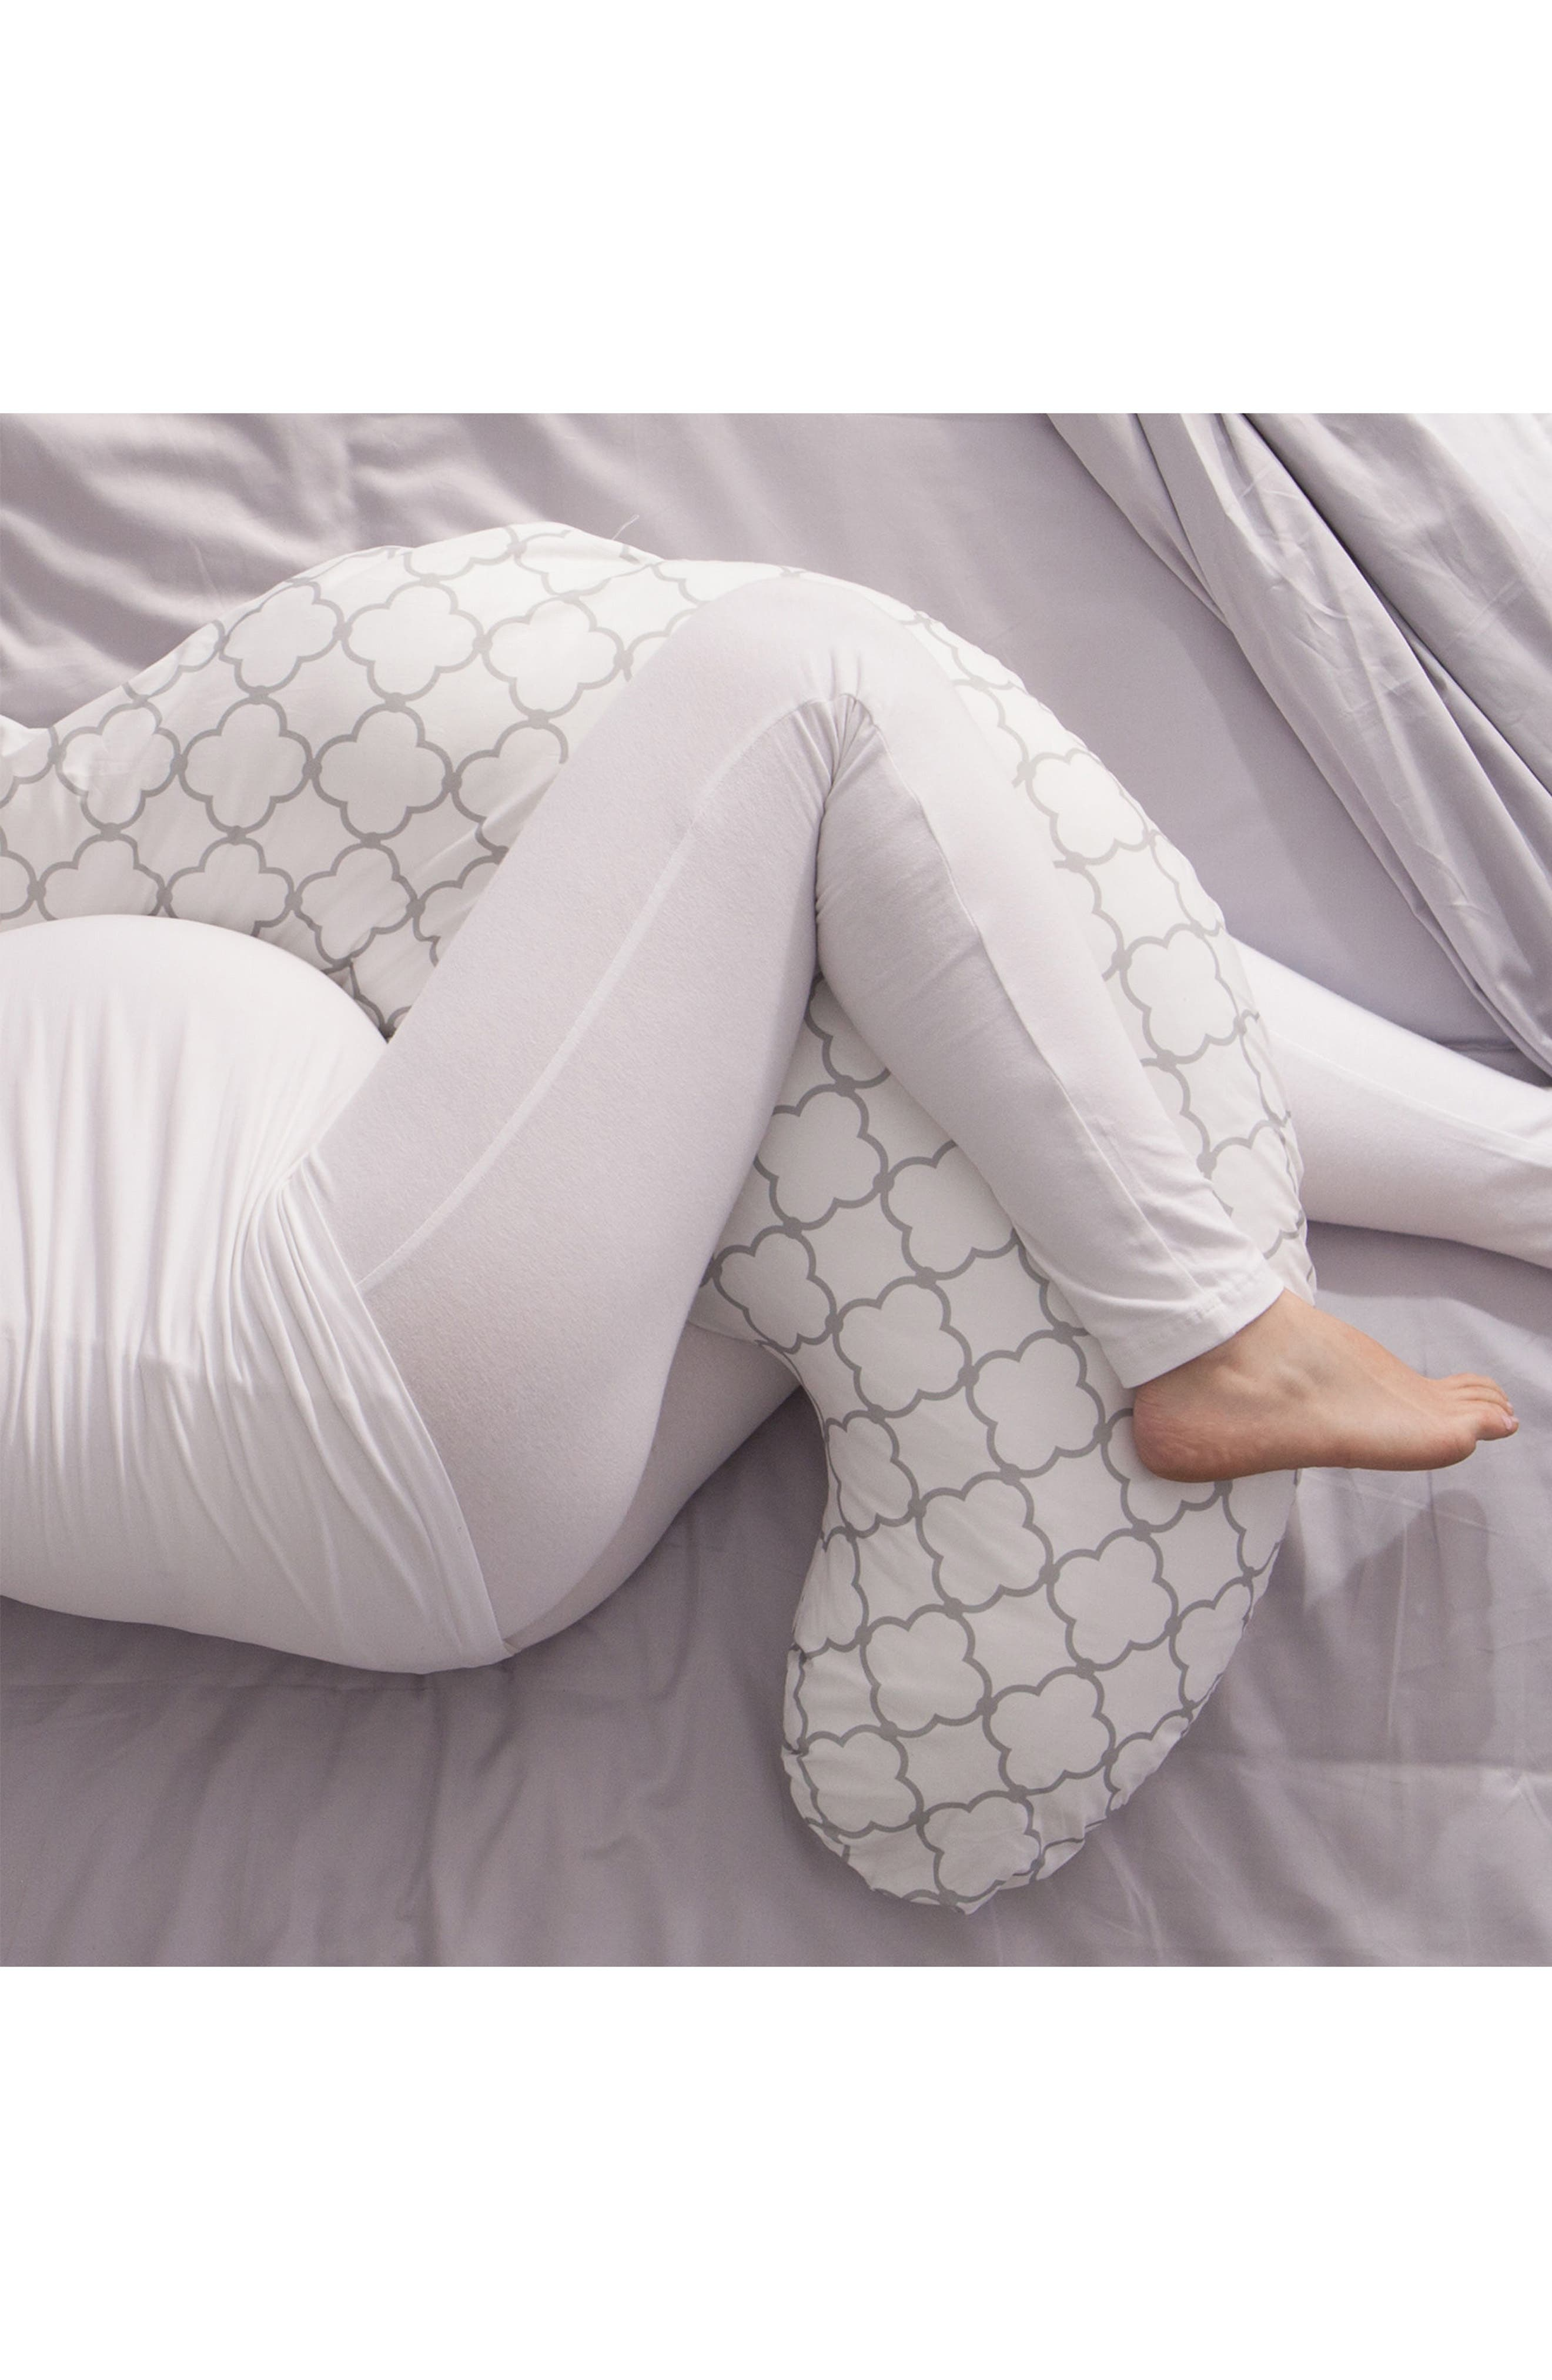 Total Pregnancy Support Pillow,                             Alternate thumbnail 3, color,                             WHITE TRELLIS